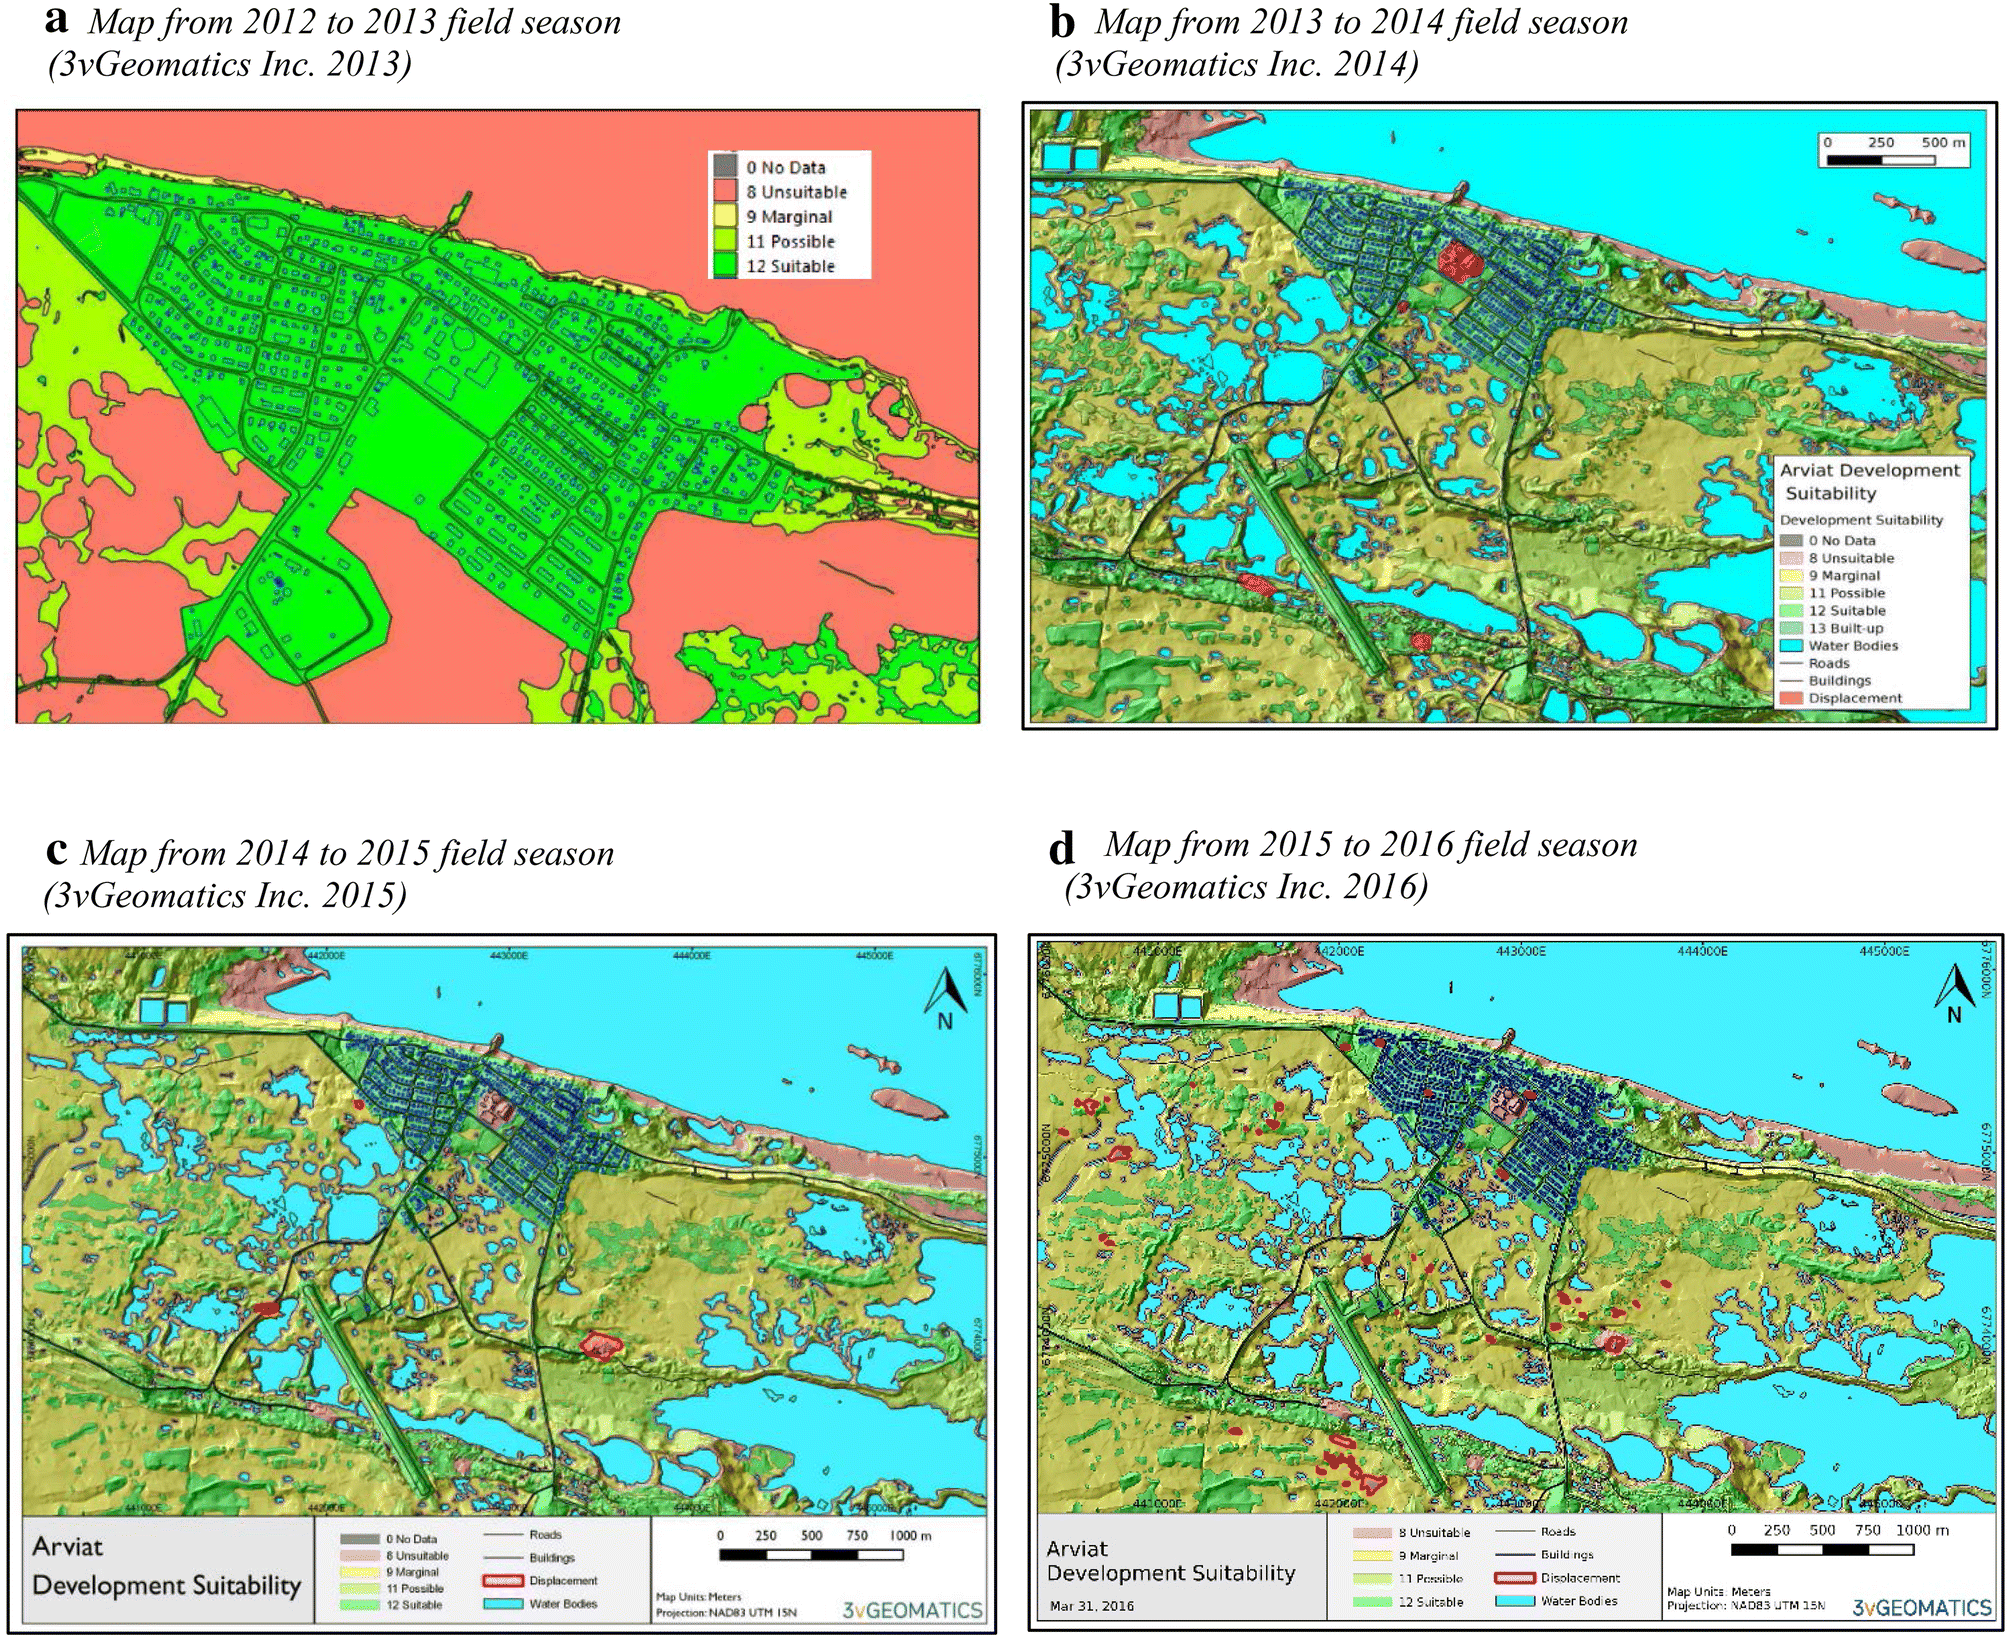 Evaluating the effectiveness of hazard mapping as climate